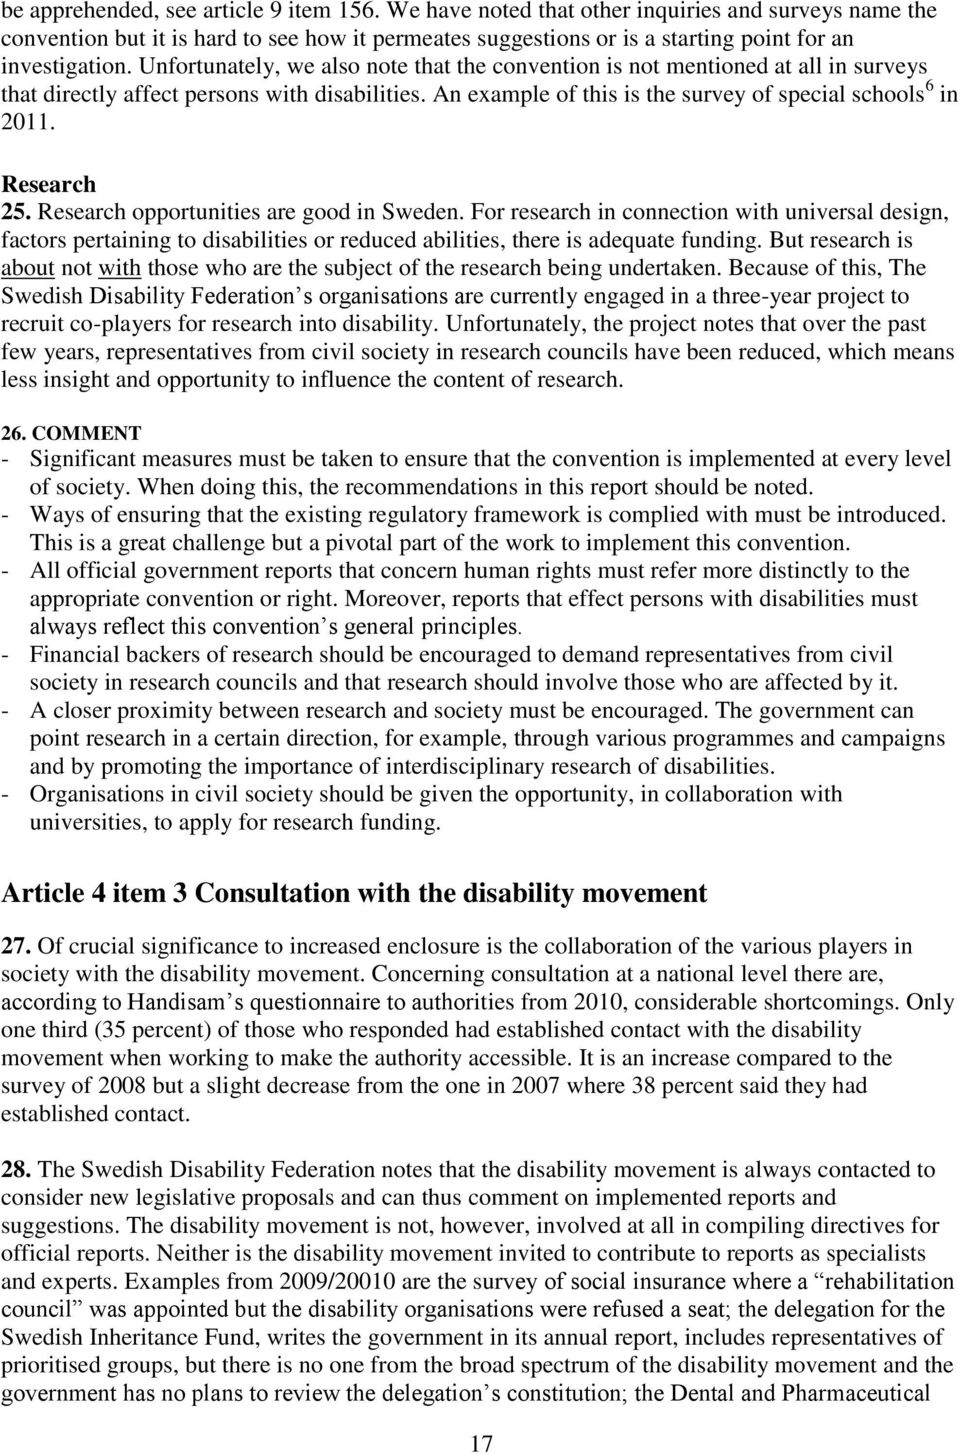 Unfortunately, we also note that the convention is not mentioned at all in surveys that directly affect persons with disabilities. An example of this is the survey of special schools 6 in 2011.